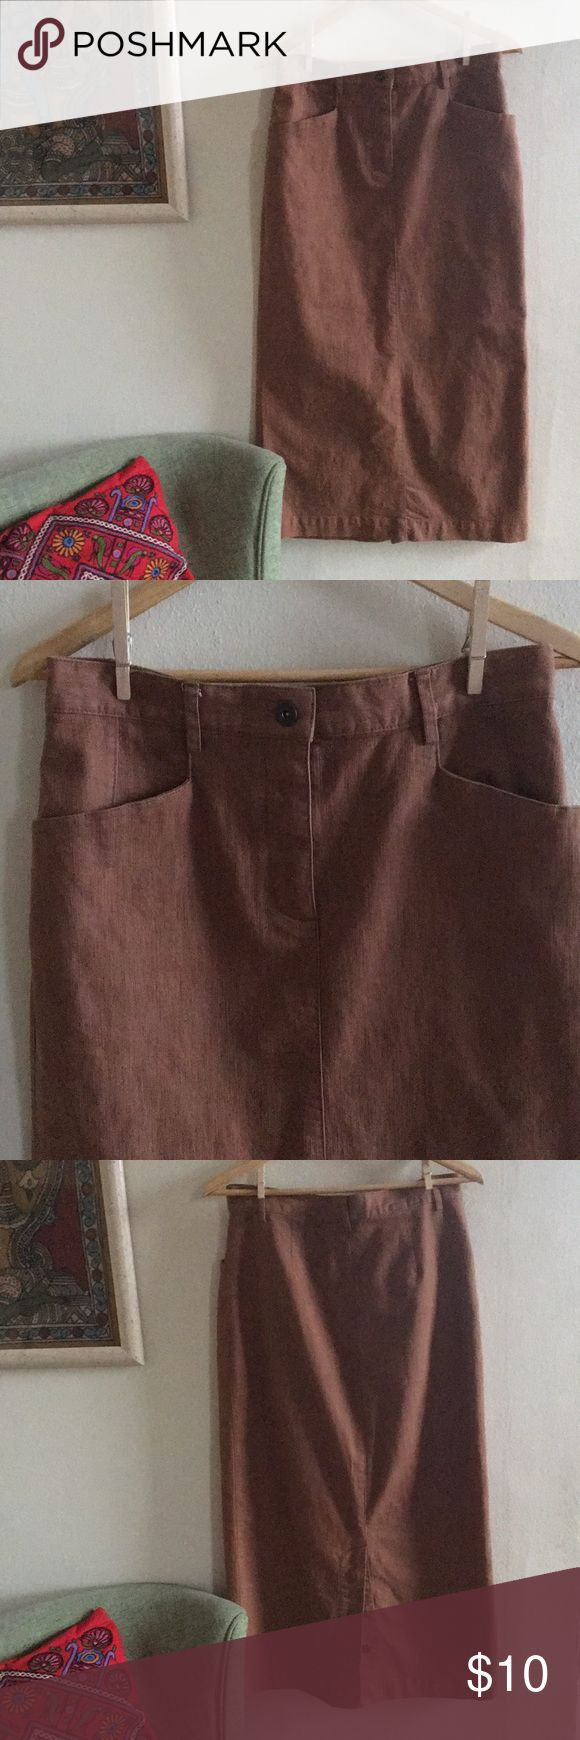 """Brown stretch denim skirt - buttons in the back Classic shape. Long denim skirt with stretch. Love the buttons on the back bottom. Perfect condition! Size 4. Waist measures 15"""" flat length is about 34"""" Christopher & Banks Skirts"""